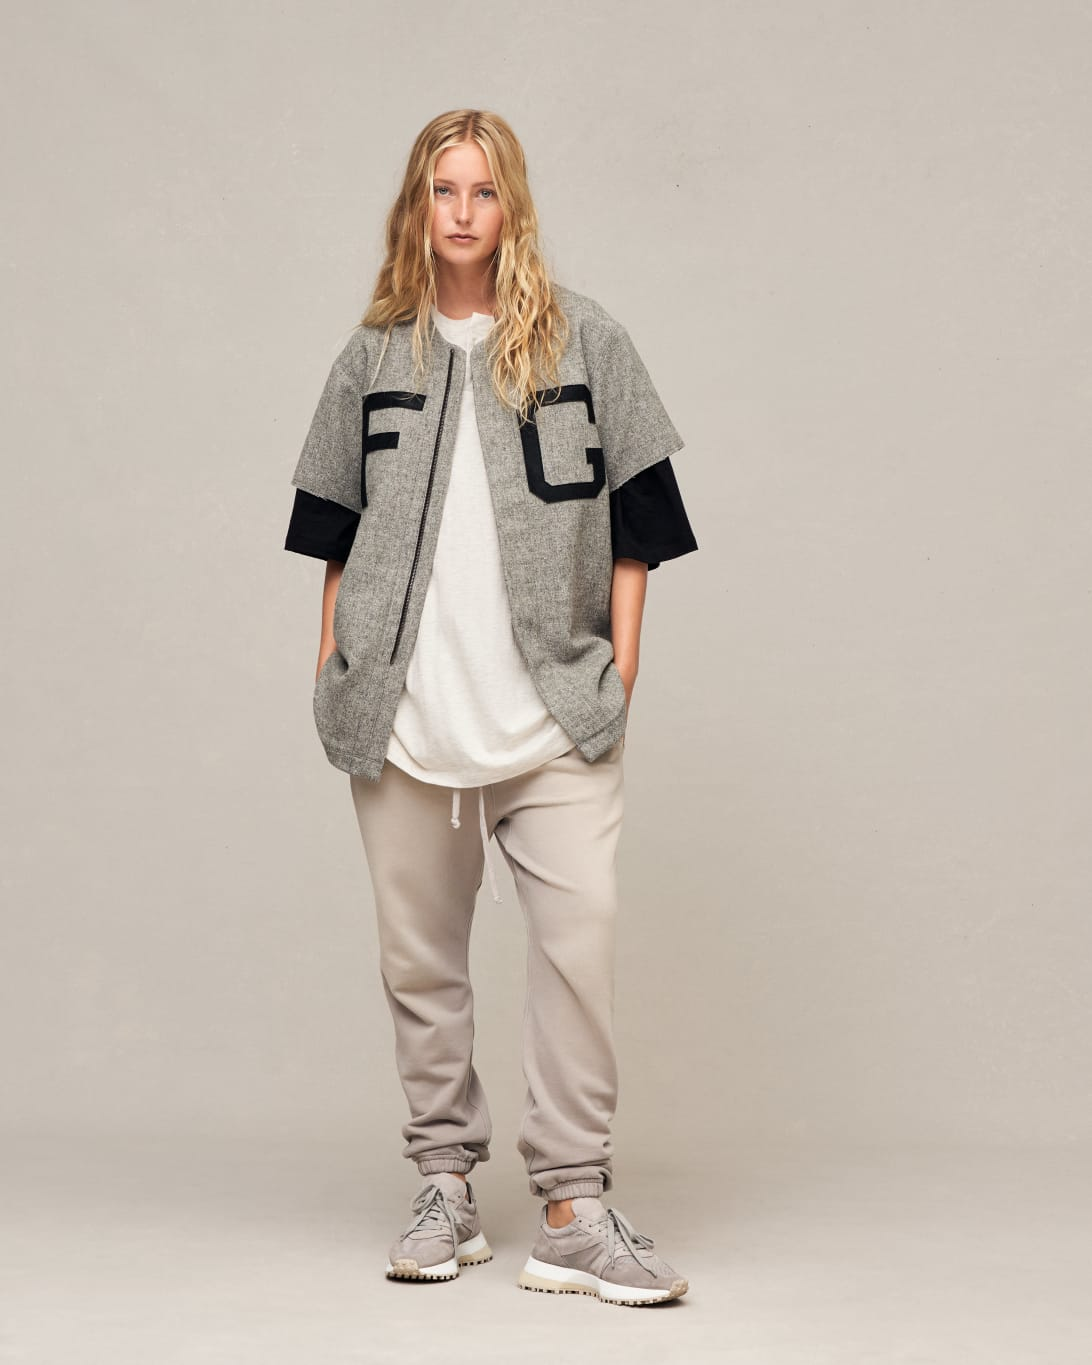 Seventh Collection | Fall/Winter Lookbook Look 41